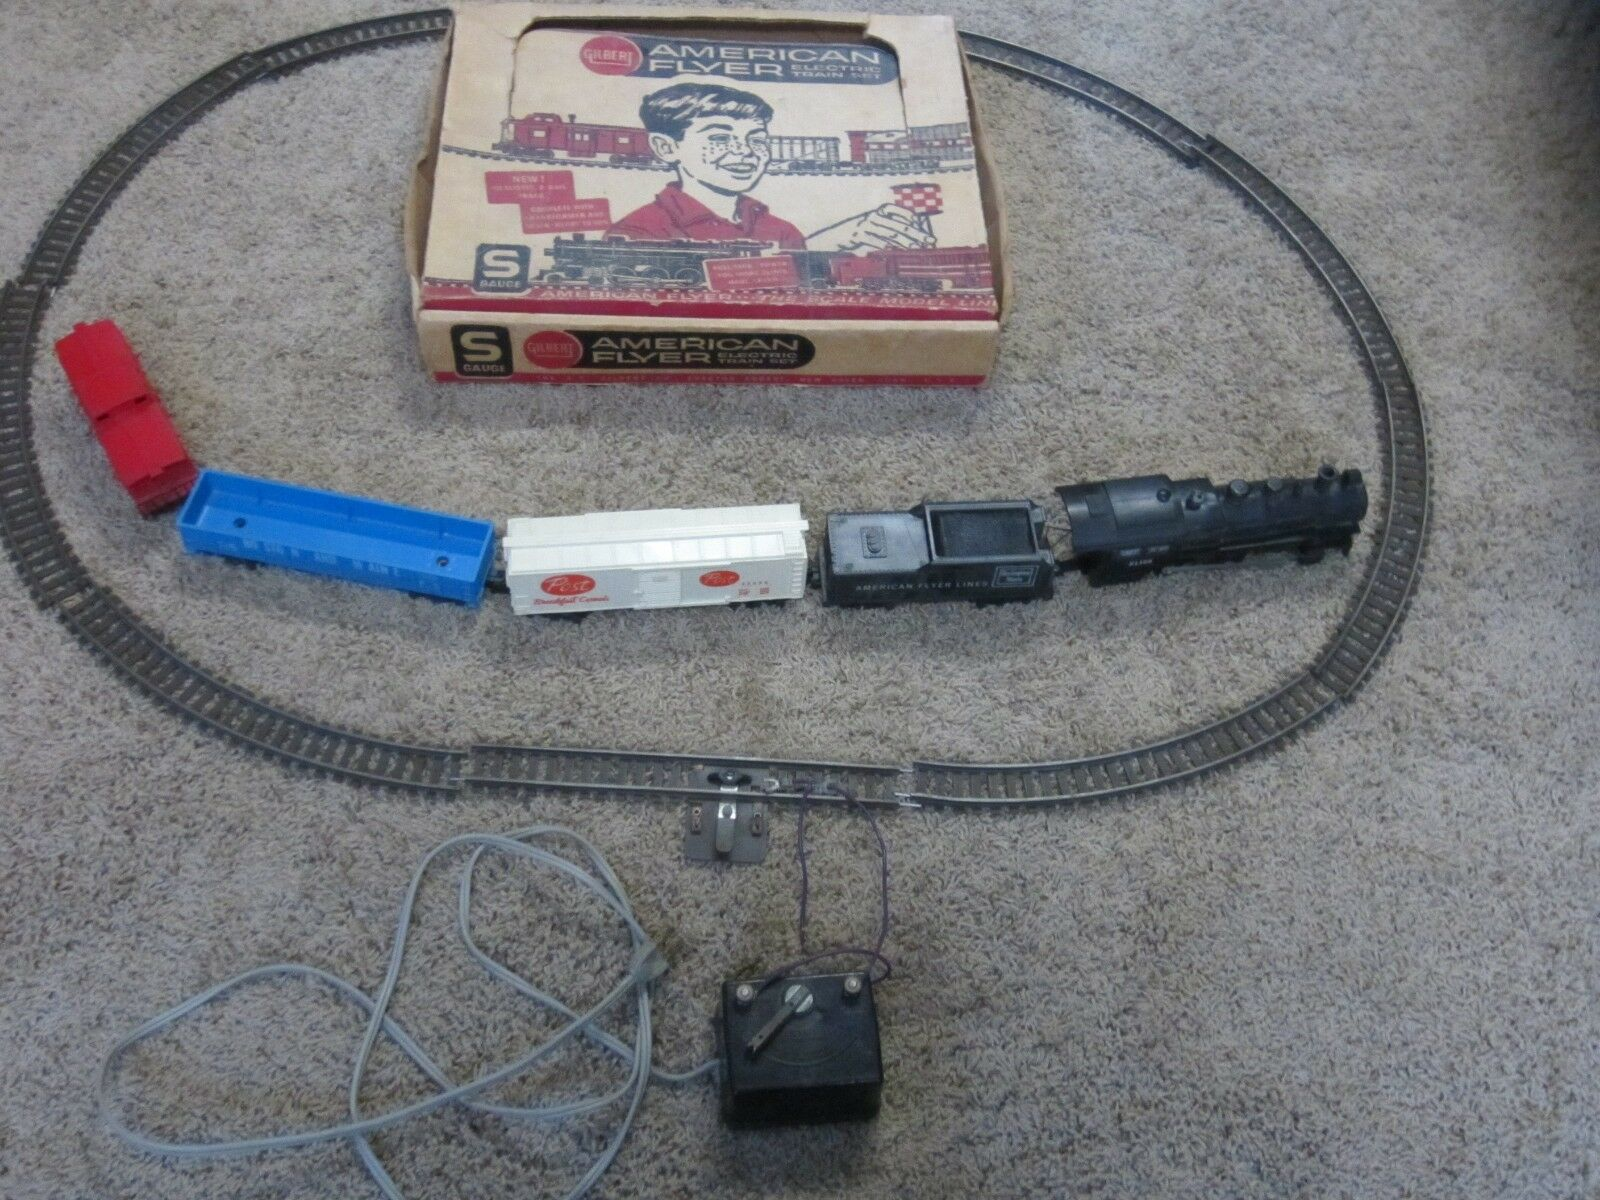 1960s American Flyer train set model 20763